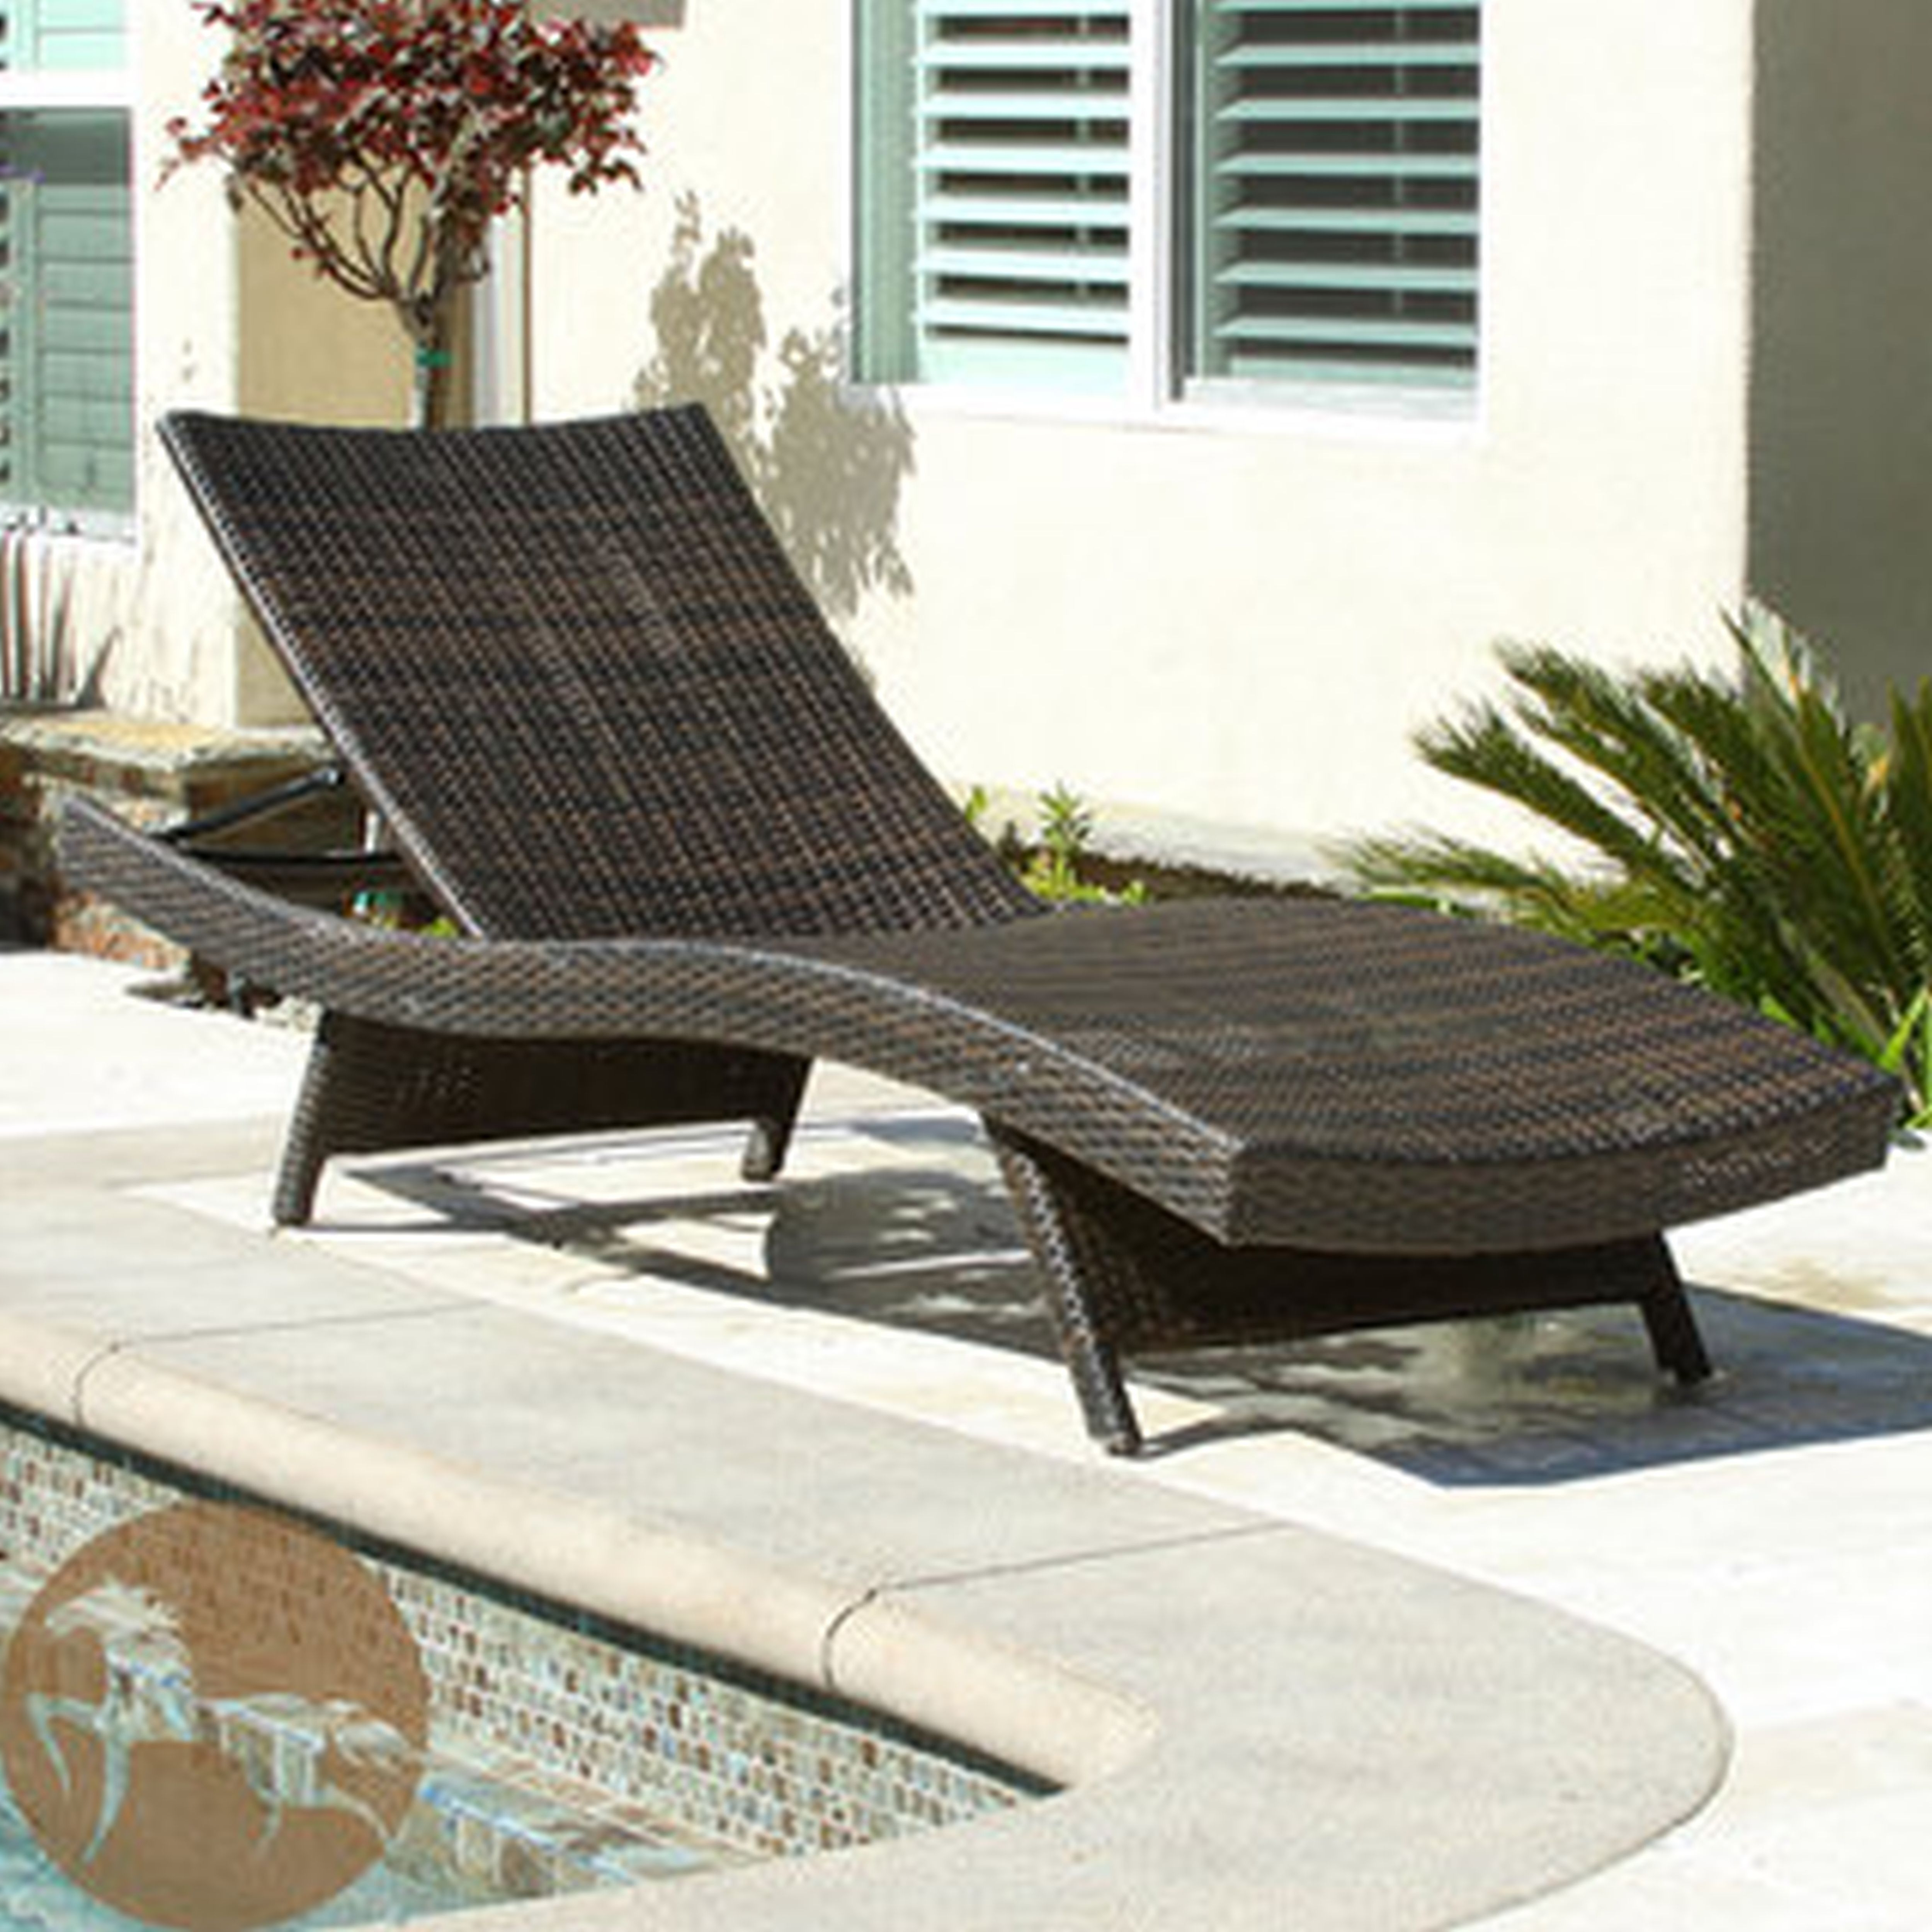 Chaise Lounge Chairs For Outdoor Inside 2018 Outdoor : Patio Chaise Lounge Chairs Pool Lounge Chairs Chaise (View 3 of 15)